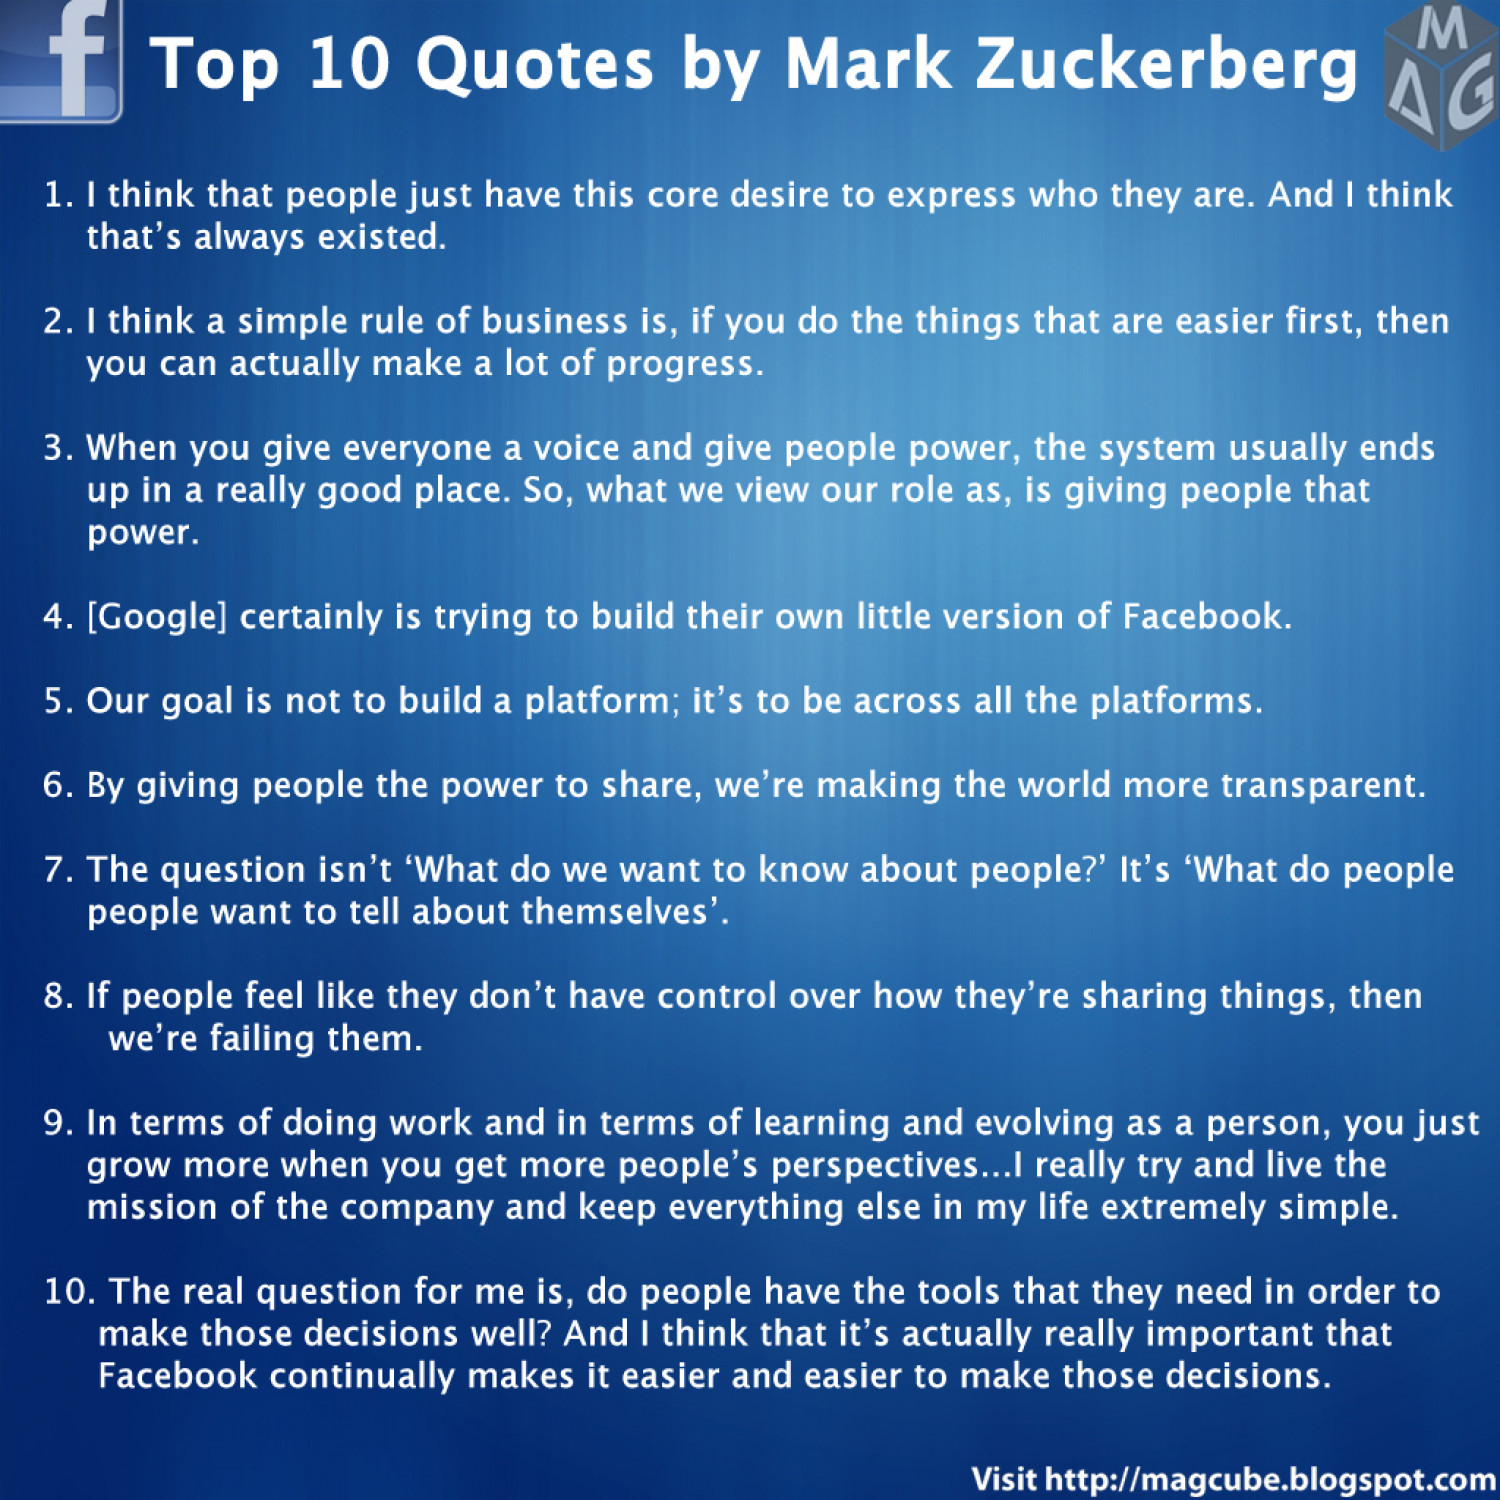 Top 10 Quotes By Mark Zuckerberg Visually